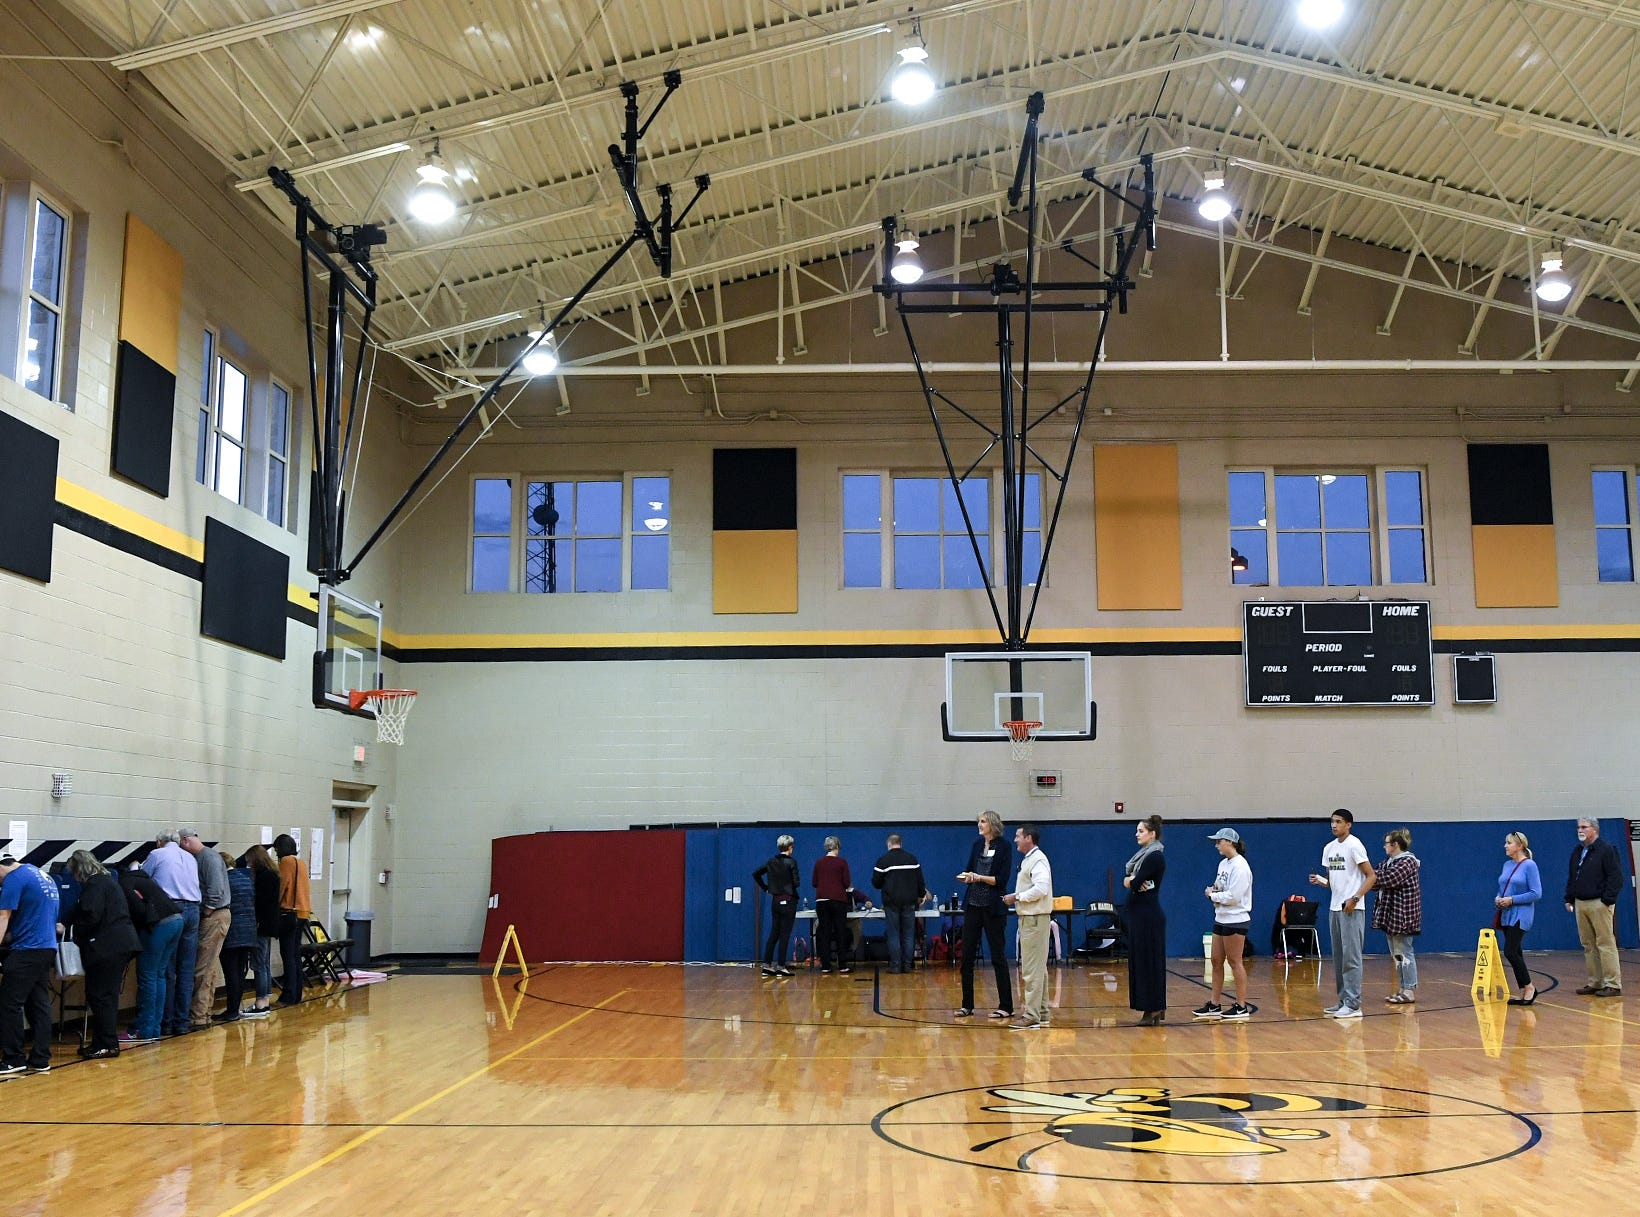 Voters line up at T.L. Hanna High School auxiliary gymnasium for last hour voting in the midterm elections in Anderson on Tuesday. Polling with an hour to go showed 55-percent with over 900 voters at the precinct.